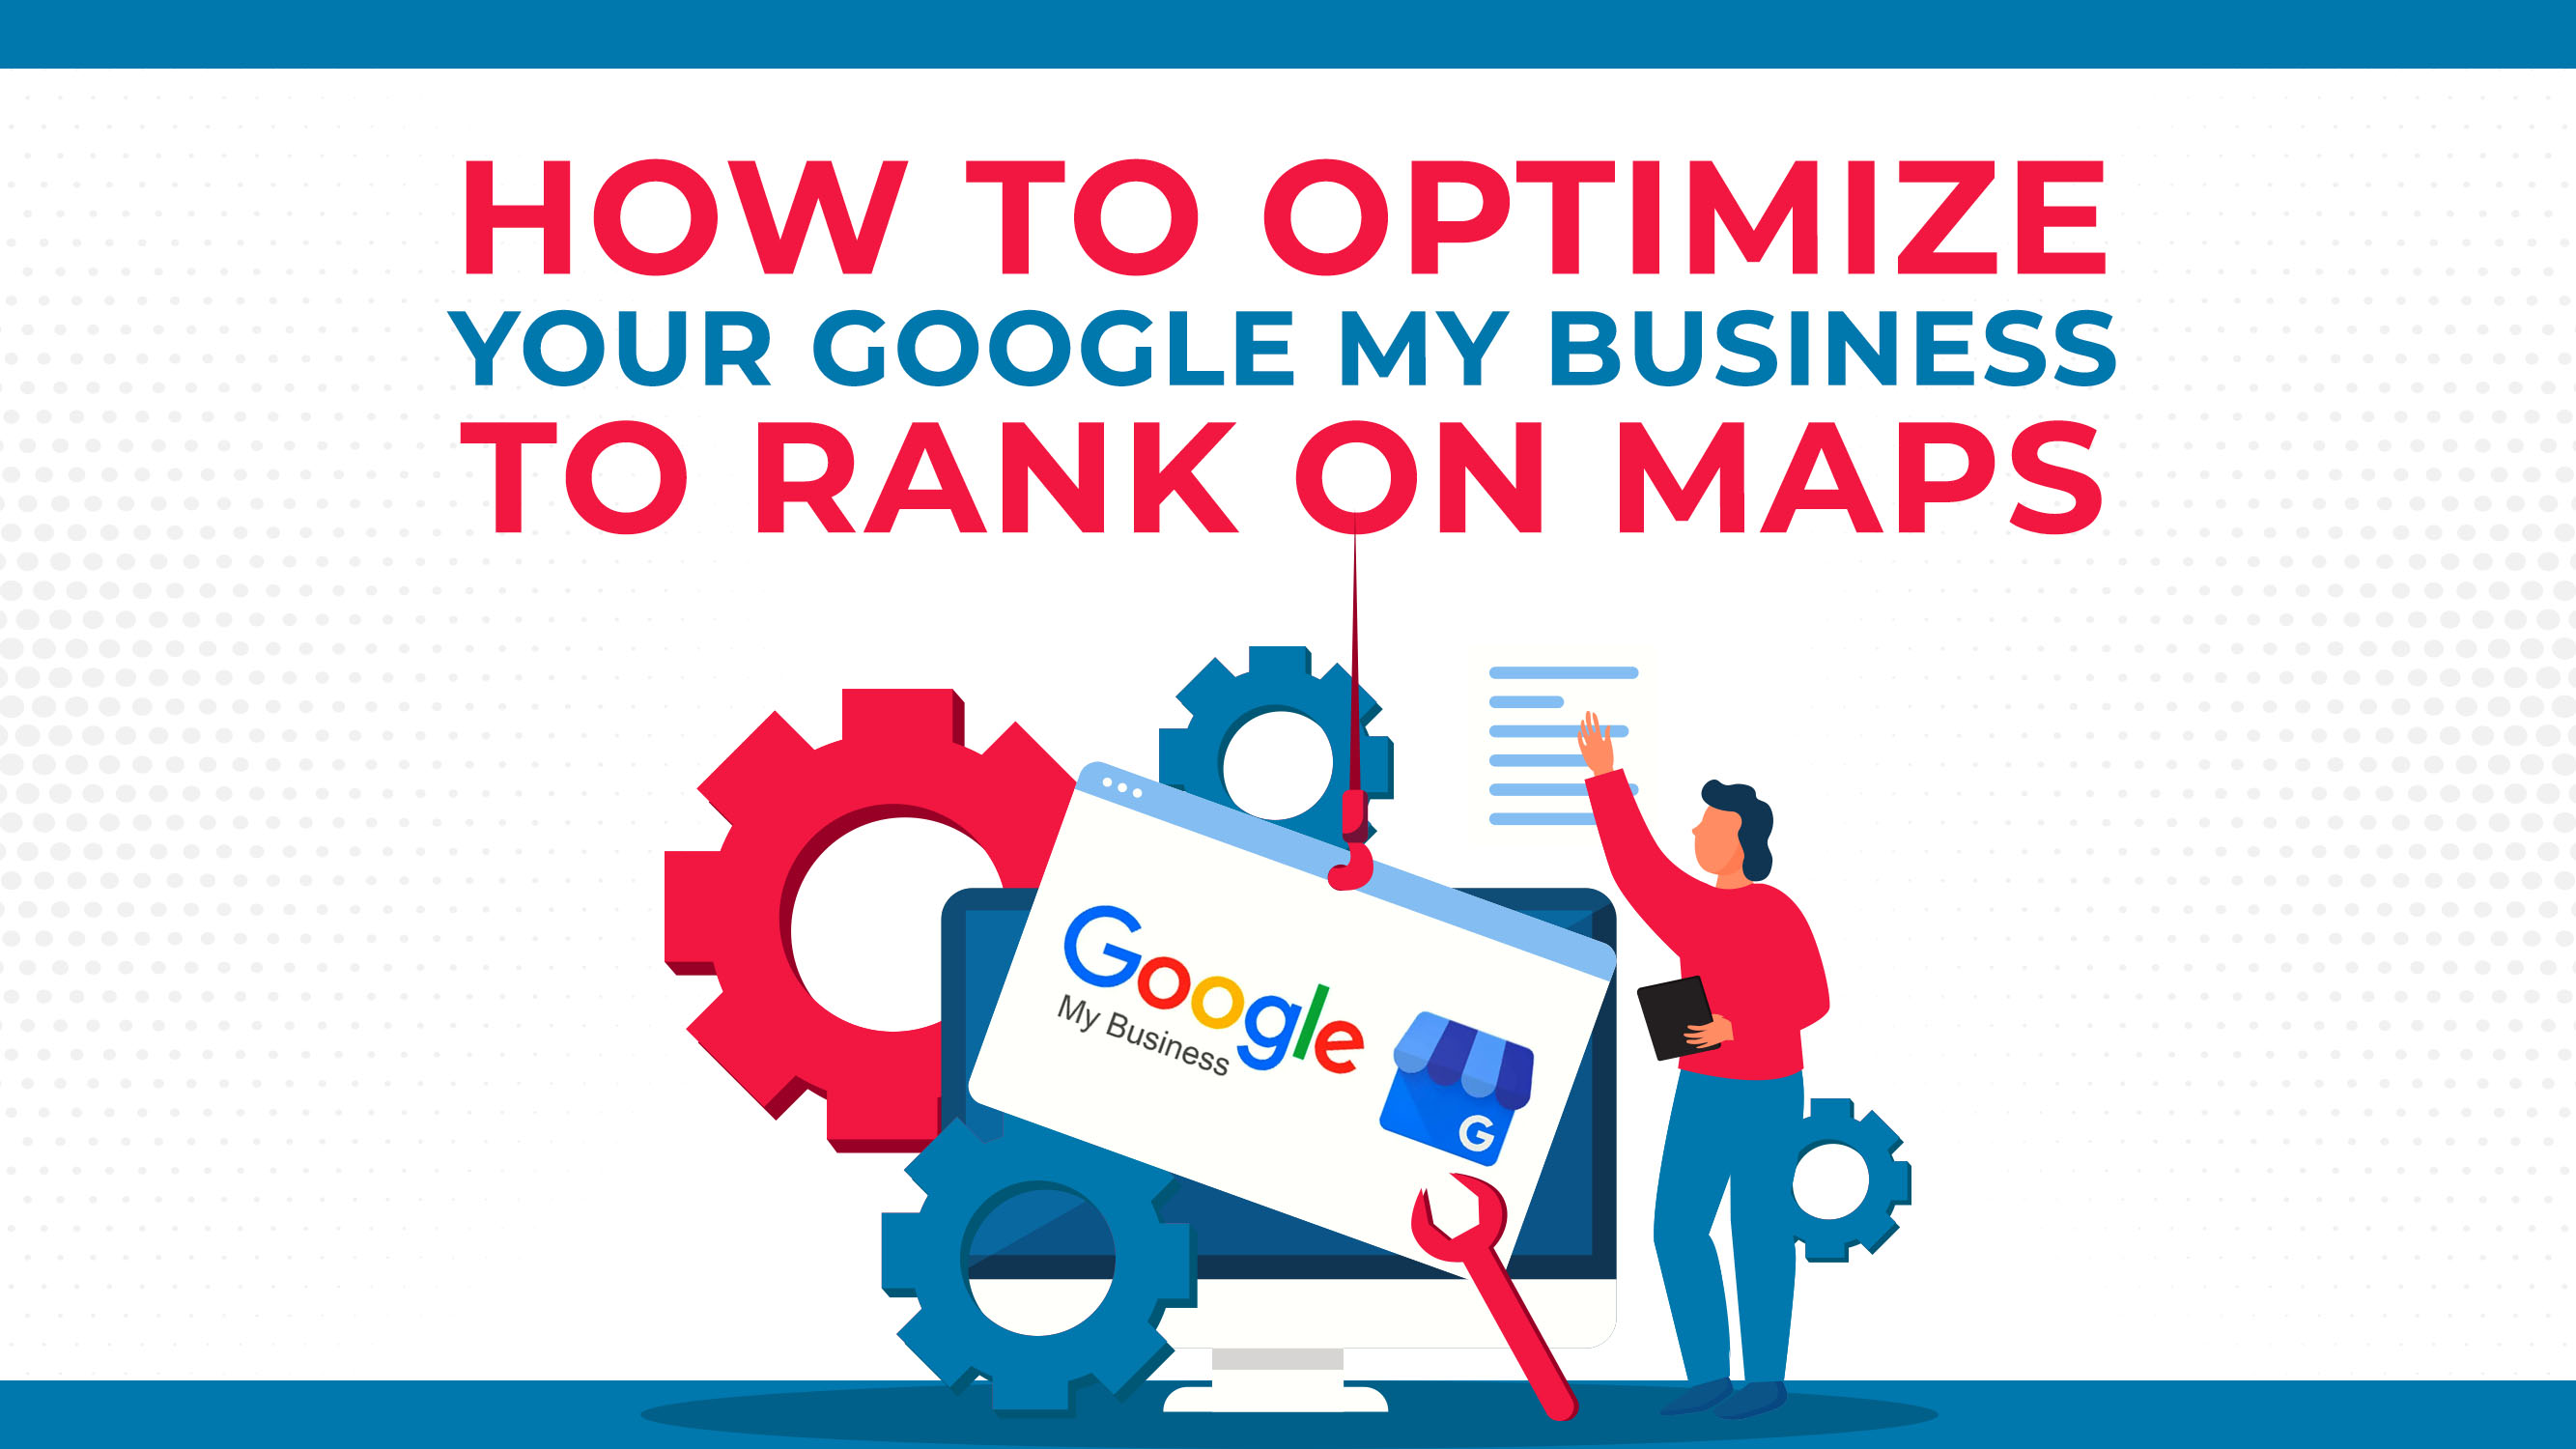 How To Optimize Your Google My Business To Rank On Maps